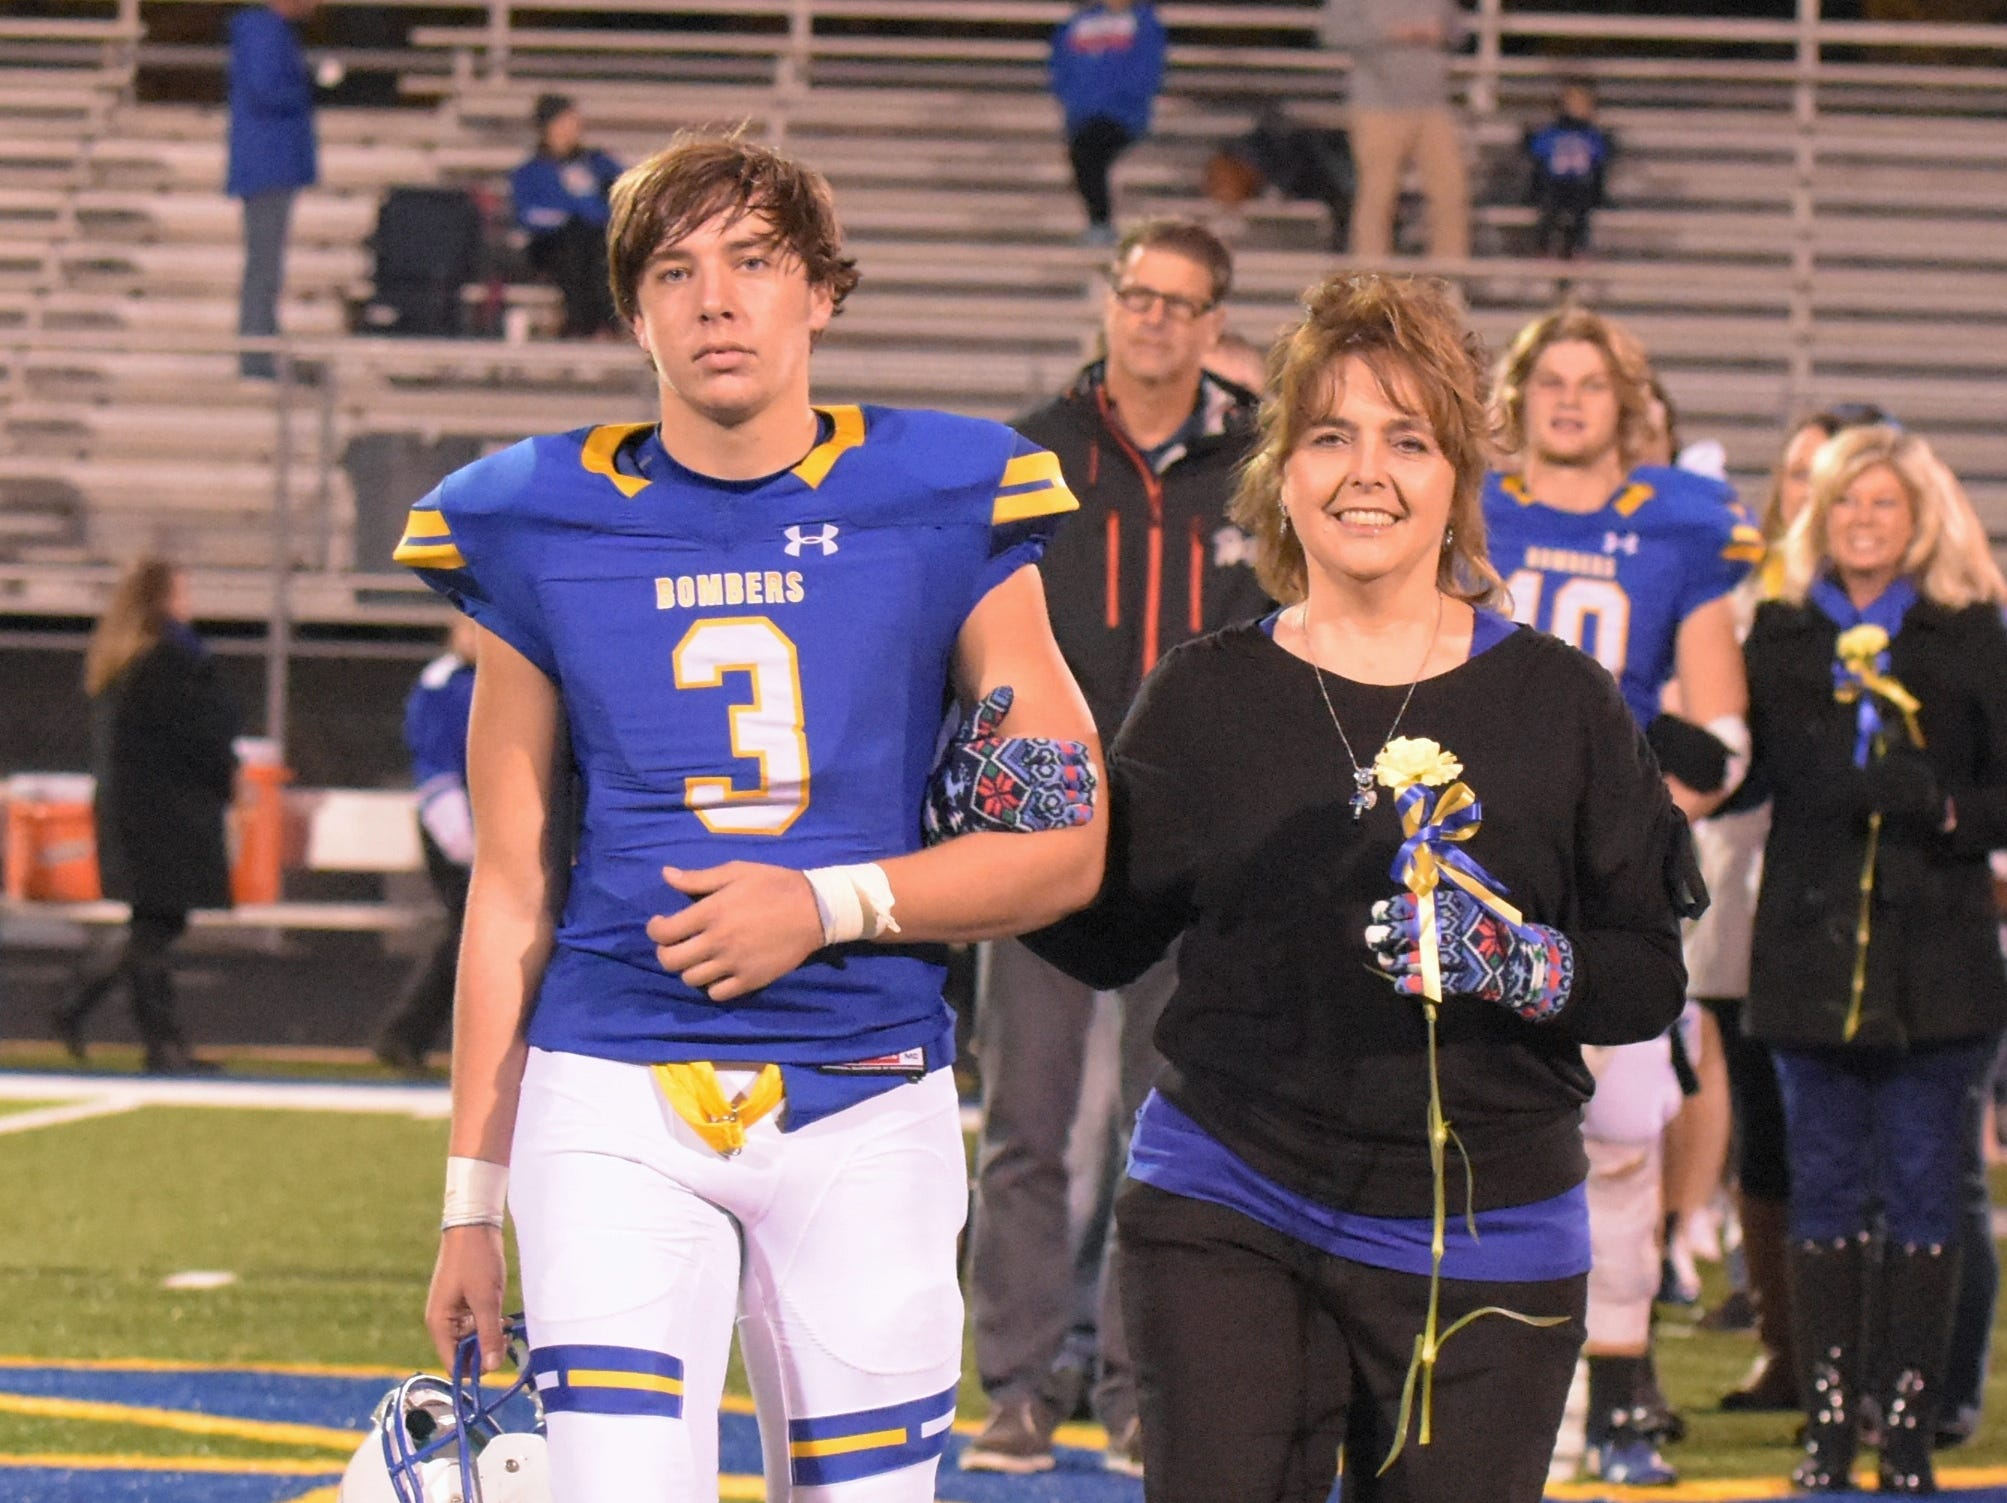 Colton Peters and his mother, Kimberly Peters.